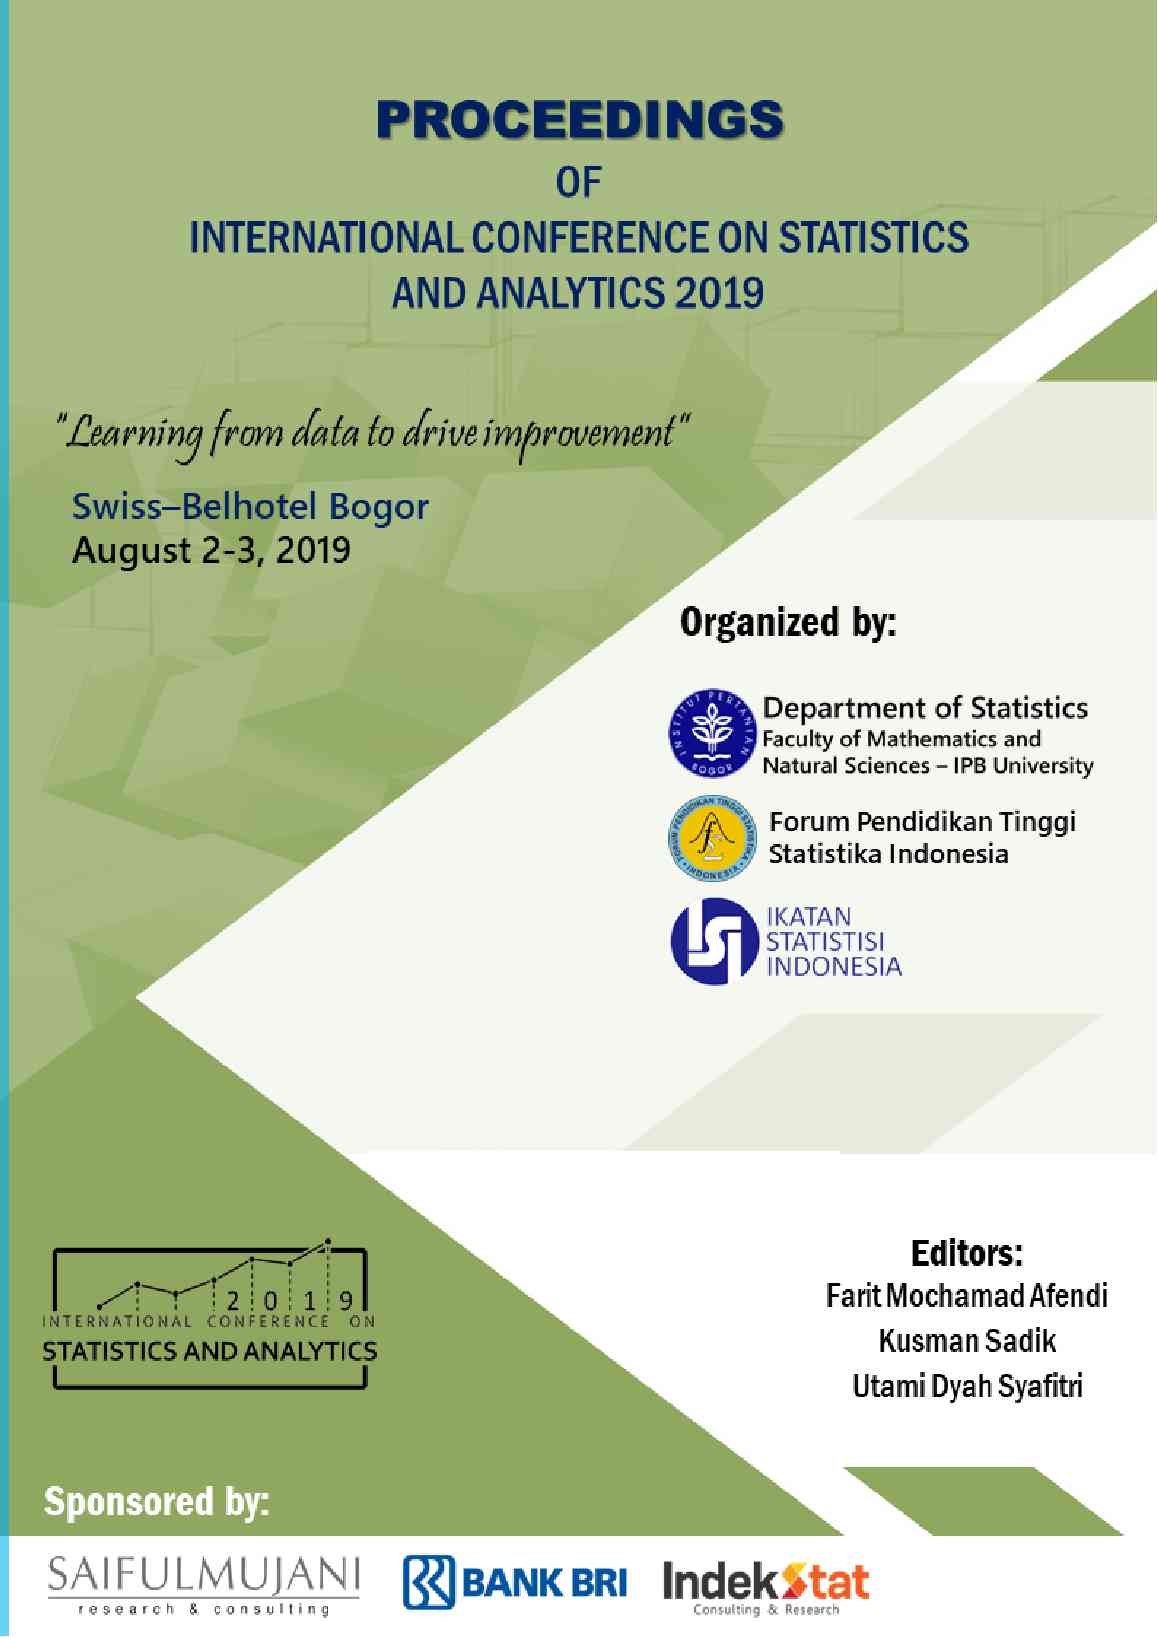 View Proceeding of International Conference on Statistics and Analytics - 2019